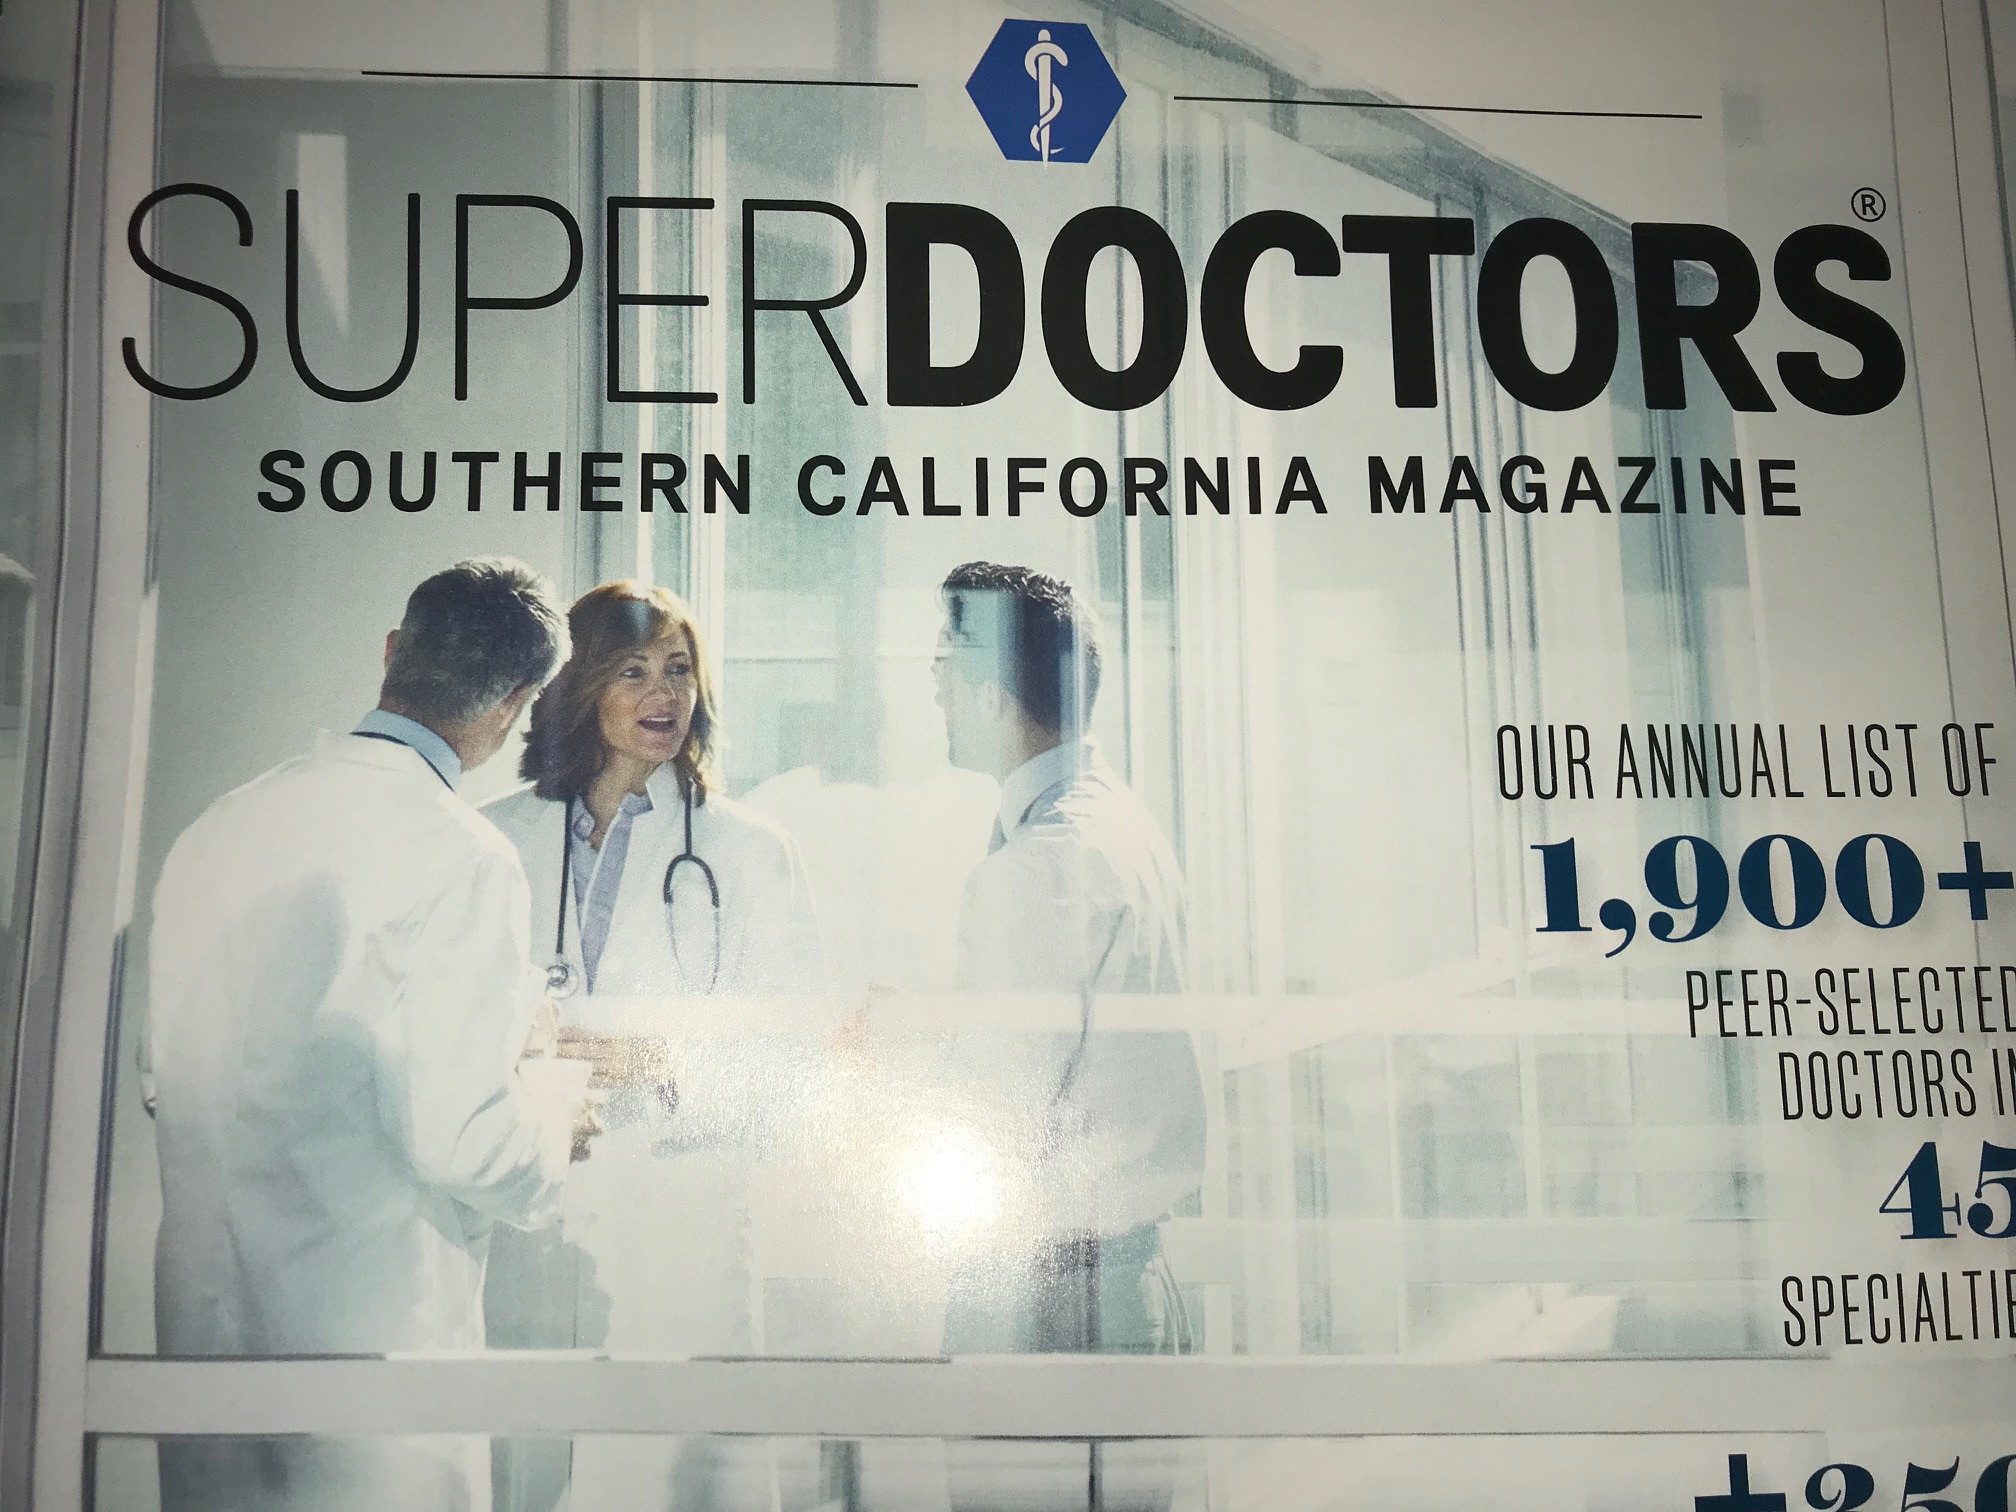 6 RPMG Docs Named Superdoctors